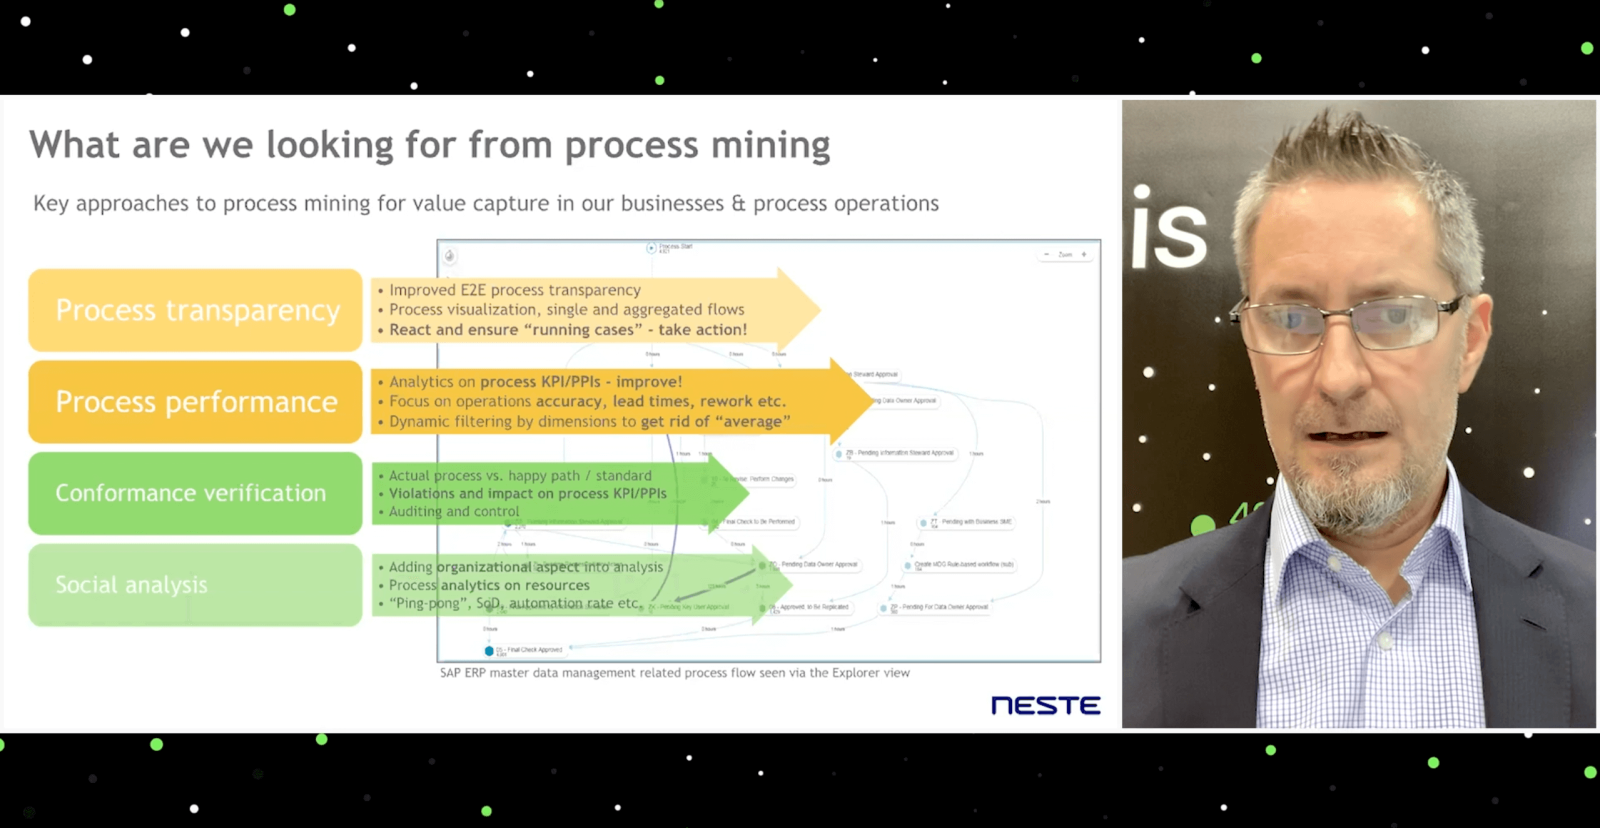 Neste's journey to process excellence with Celonis process mining